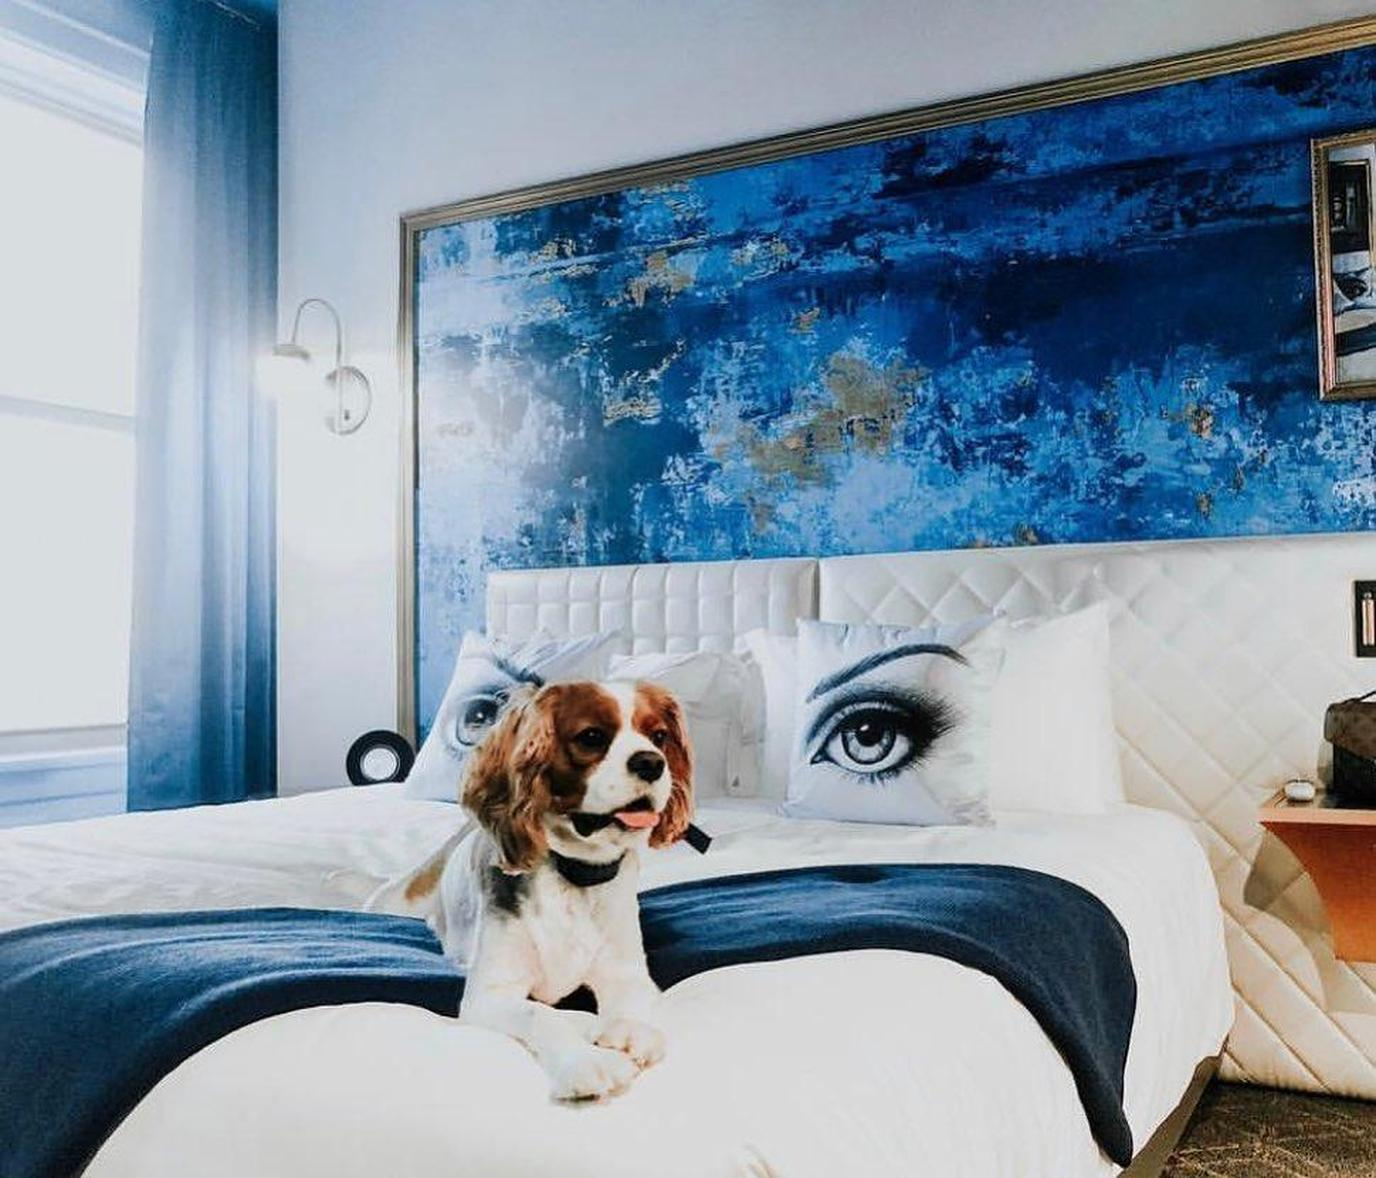 A dog enjoys the accommodations at the pet-friendly Angad Arts Hotel.